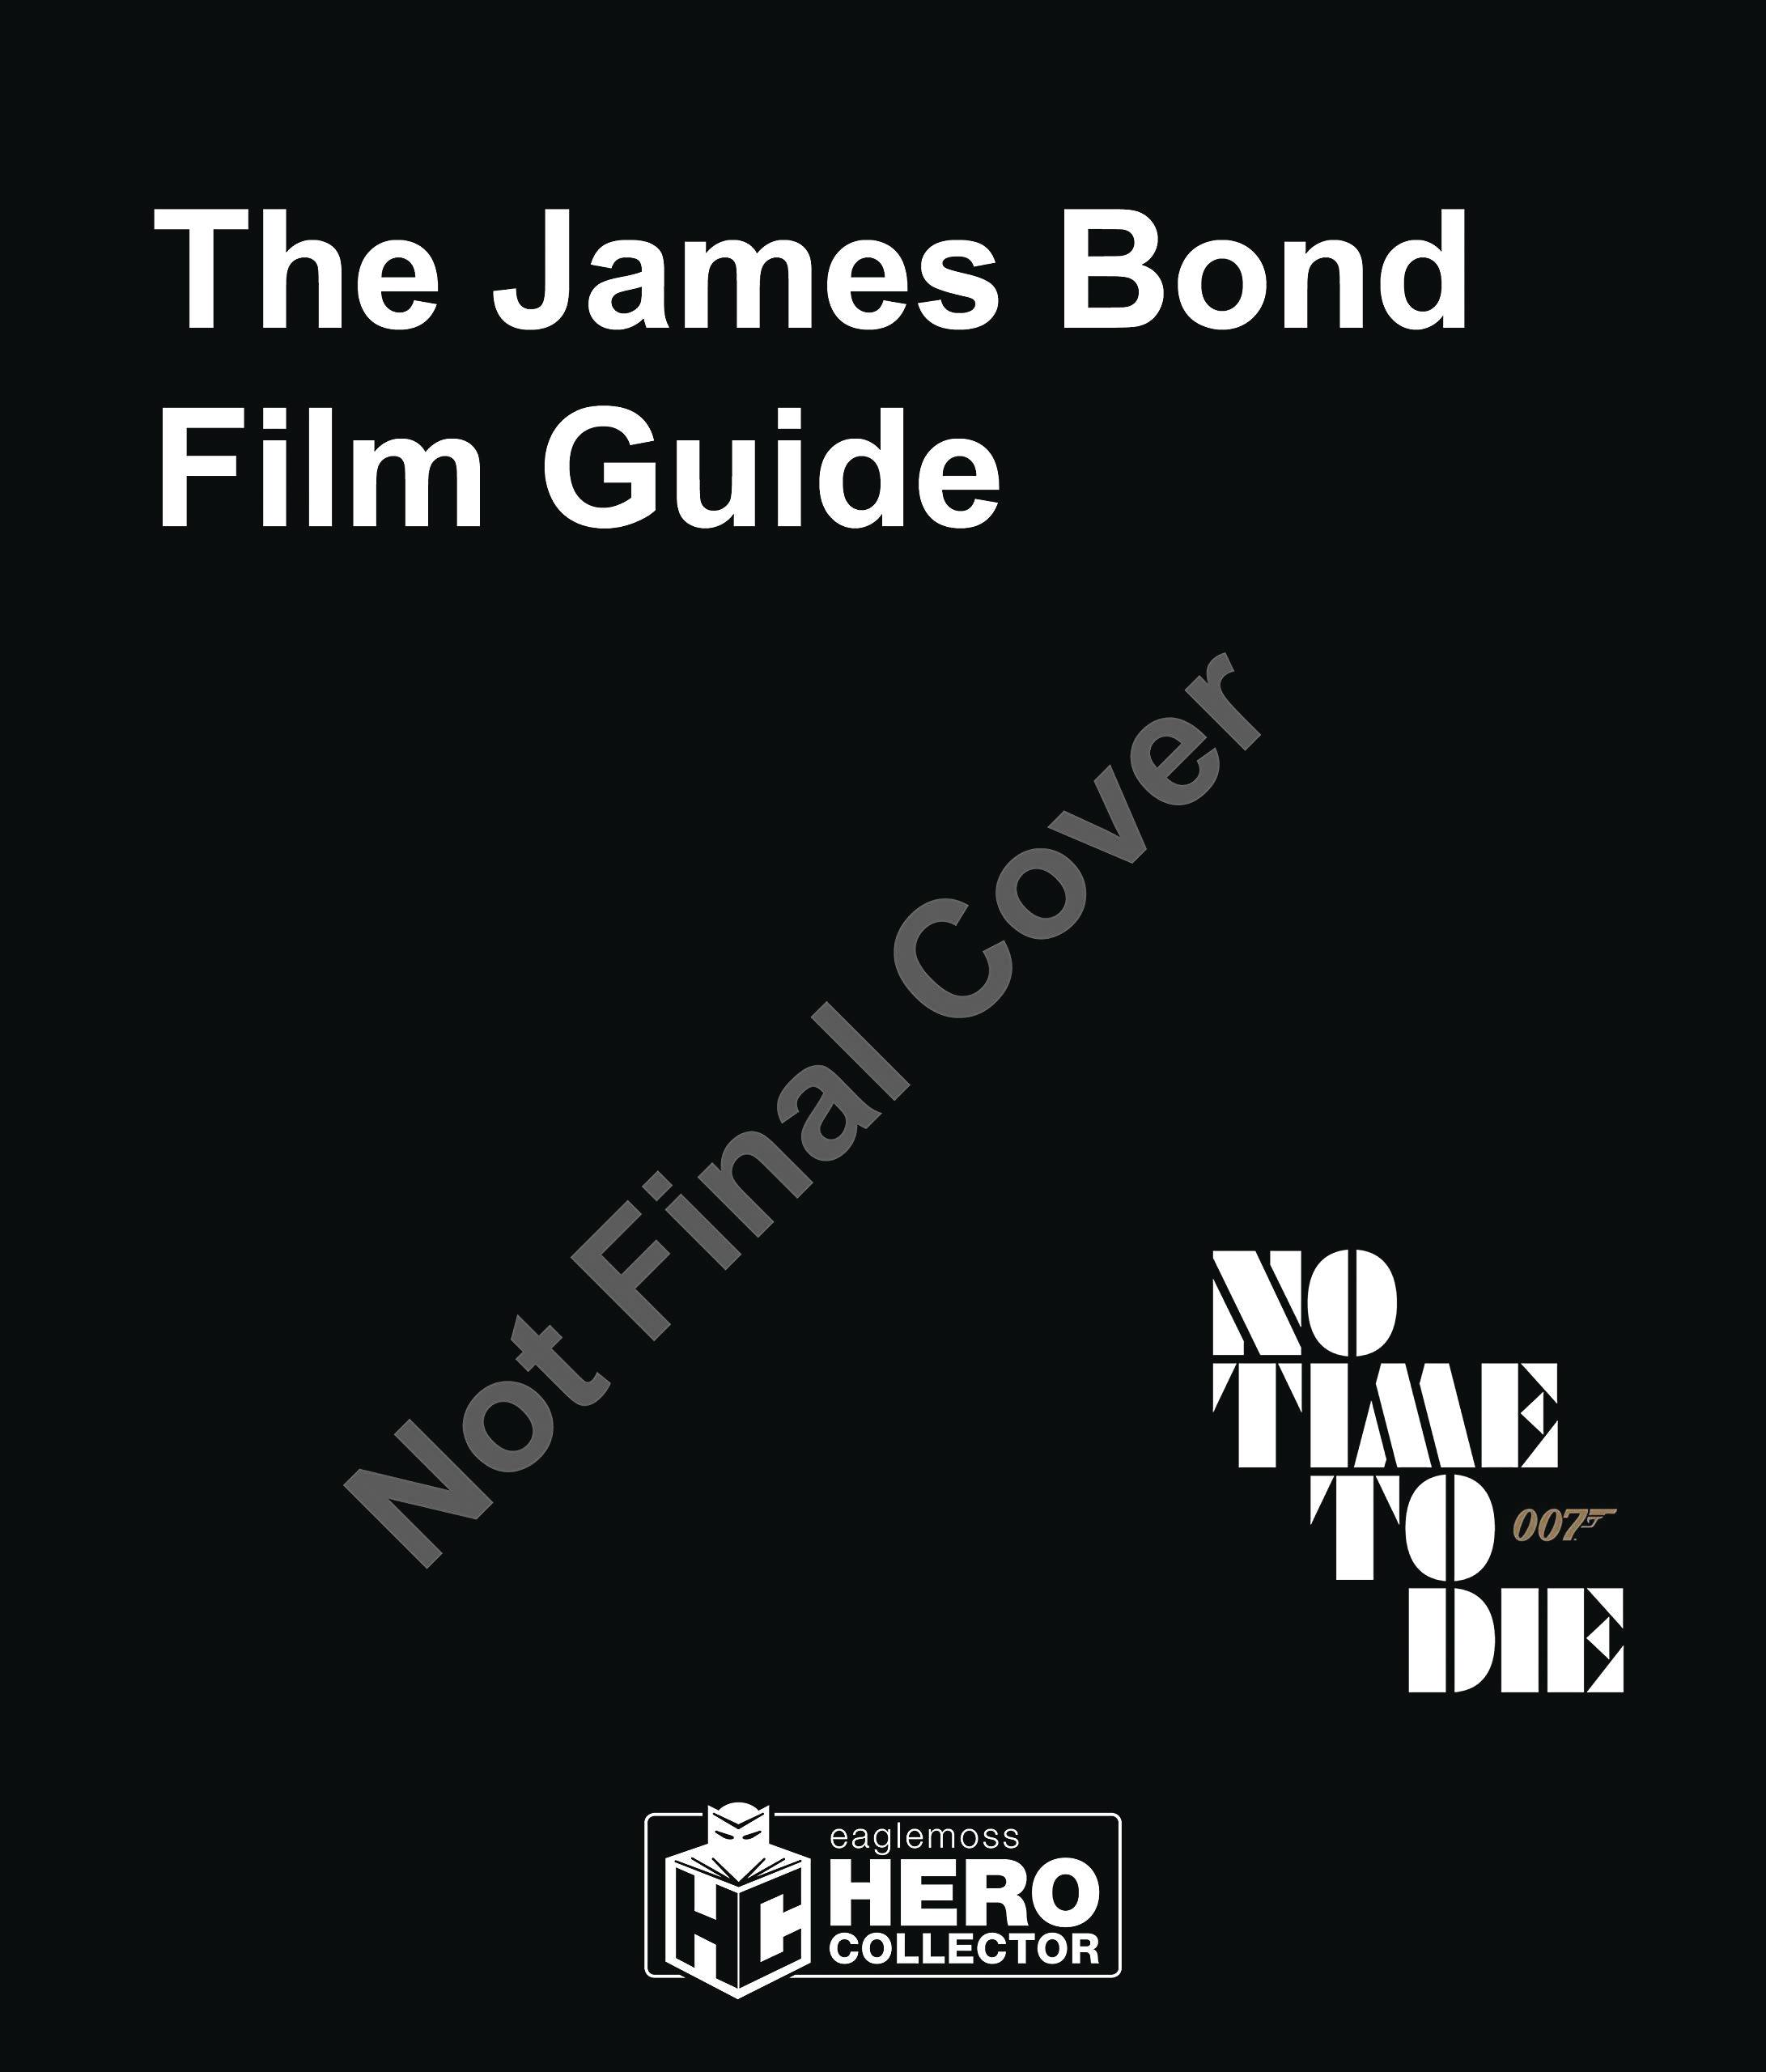 JAMES BOND FILM GUIDE OFF GT ALL 25 007 FILMS HC